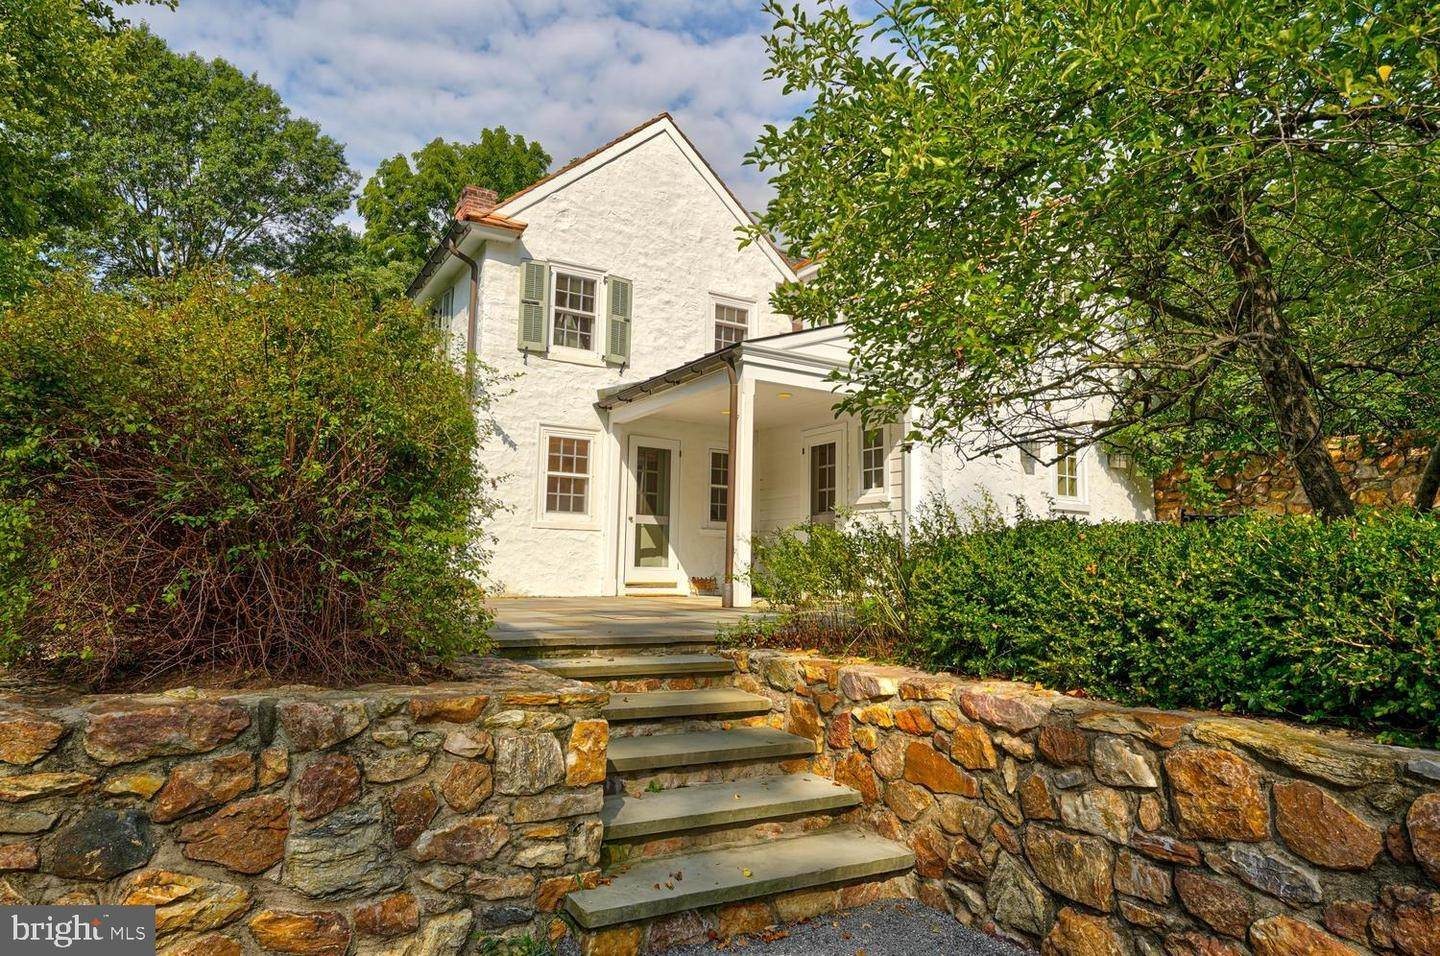 9. Detached House for Sale at 401 W LOCUST Lane Kennett Square, Pennsylvania 19348 United States